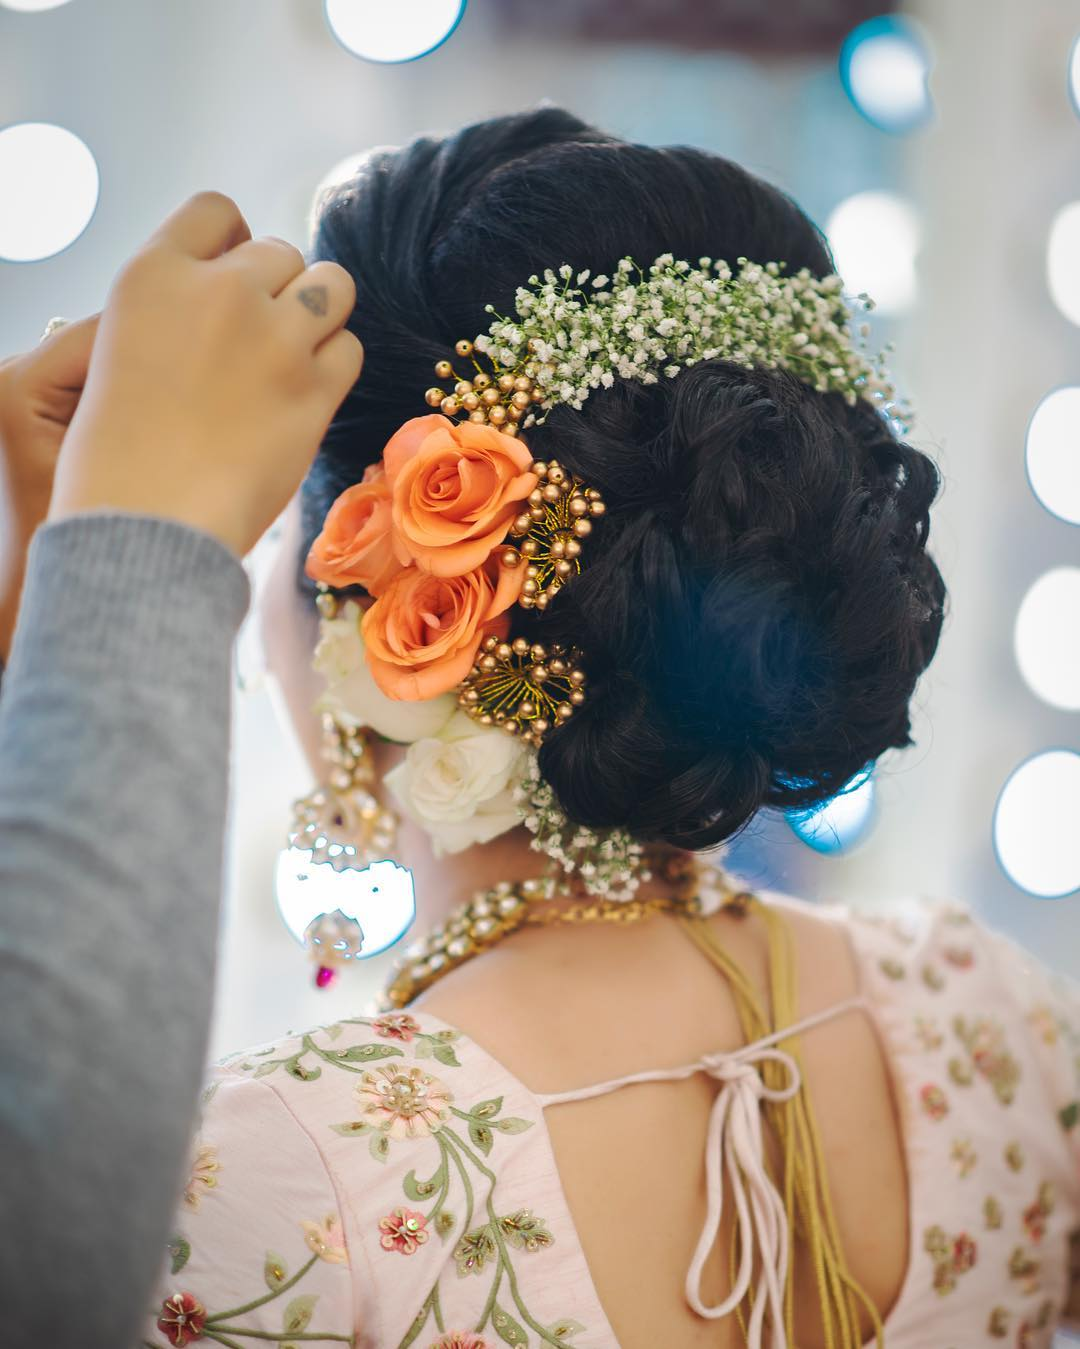 Bright and fresh: Floral Bun Hairstyles for Brides this Wedding Season